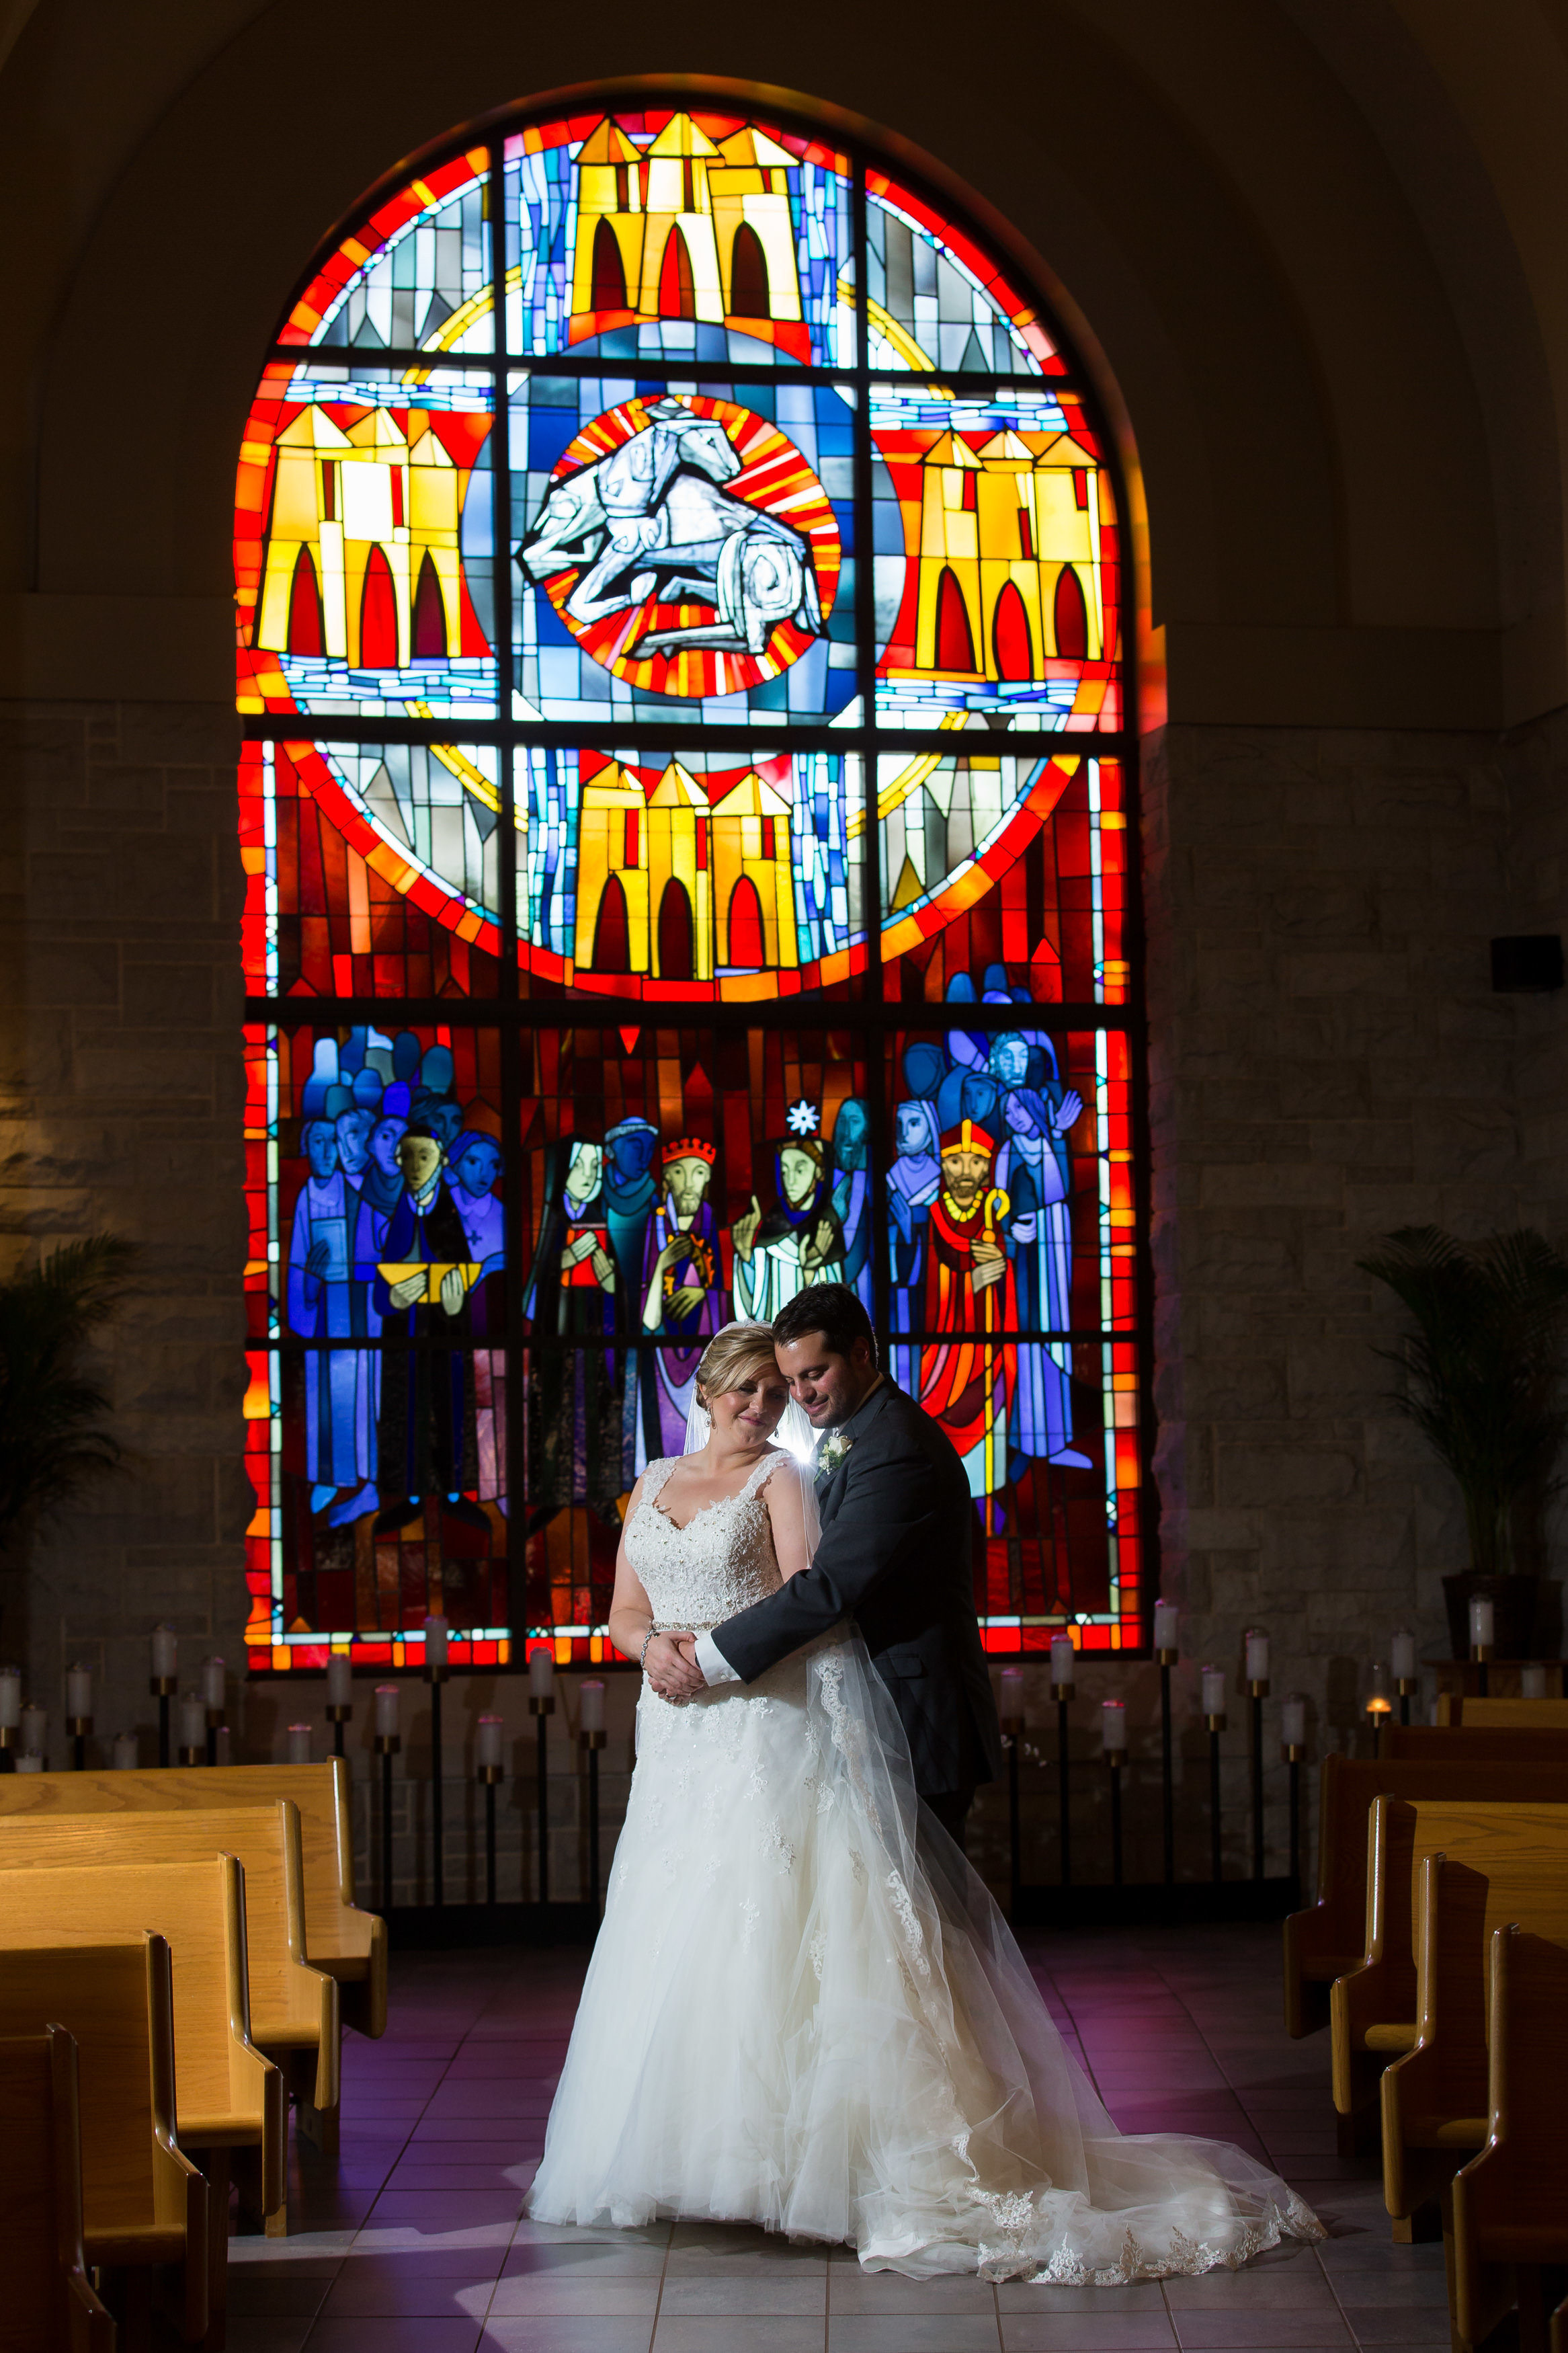 #STLBRIDE Wedding Photography